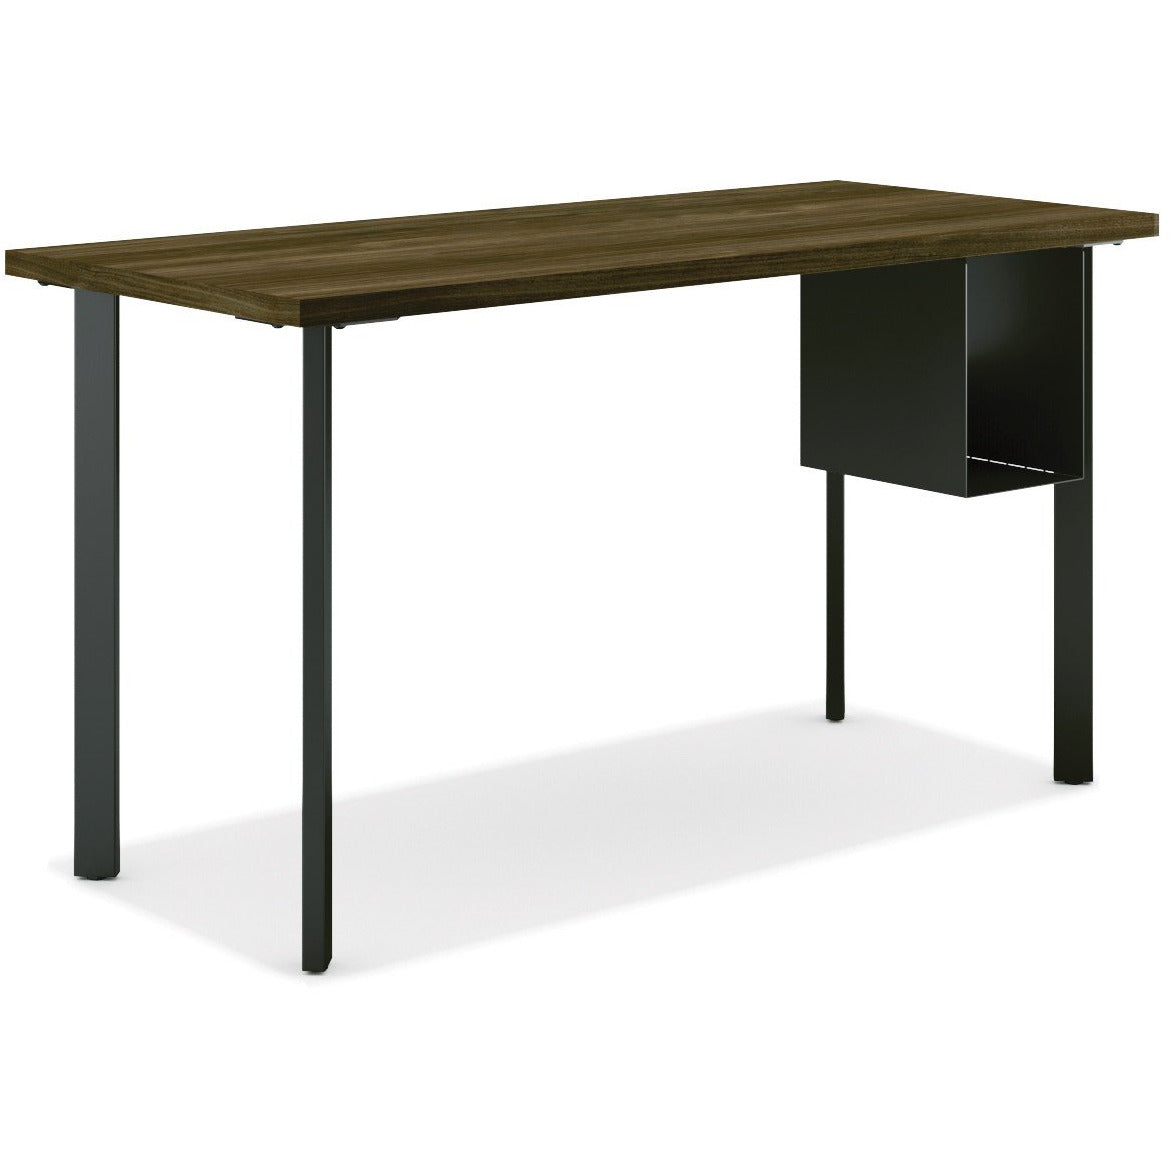 Coze Table Desk with Post Legs and U-Storage